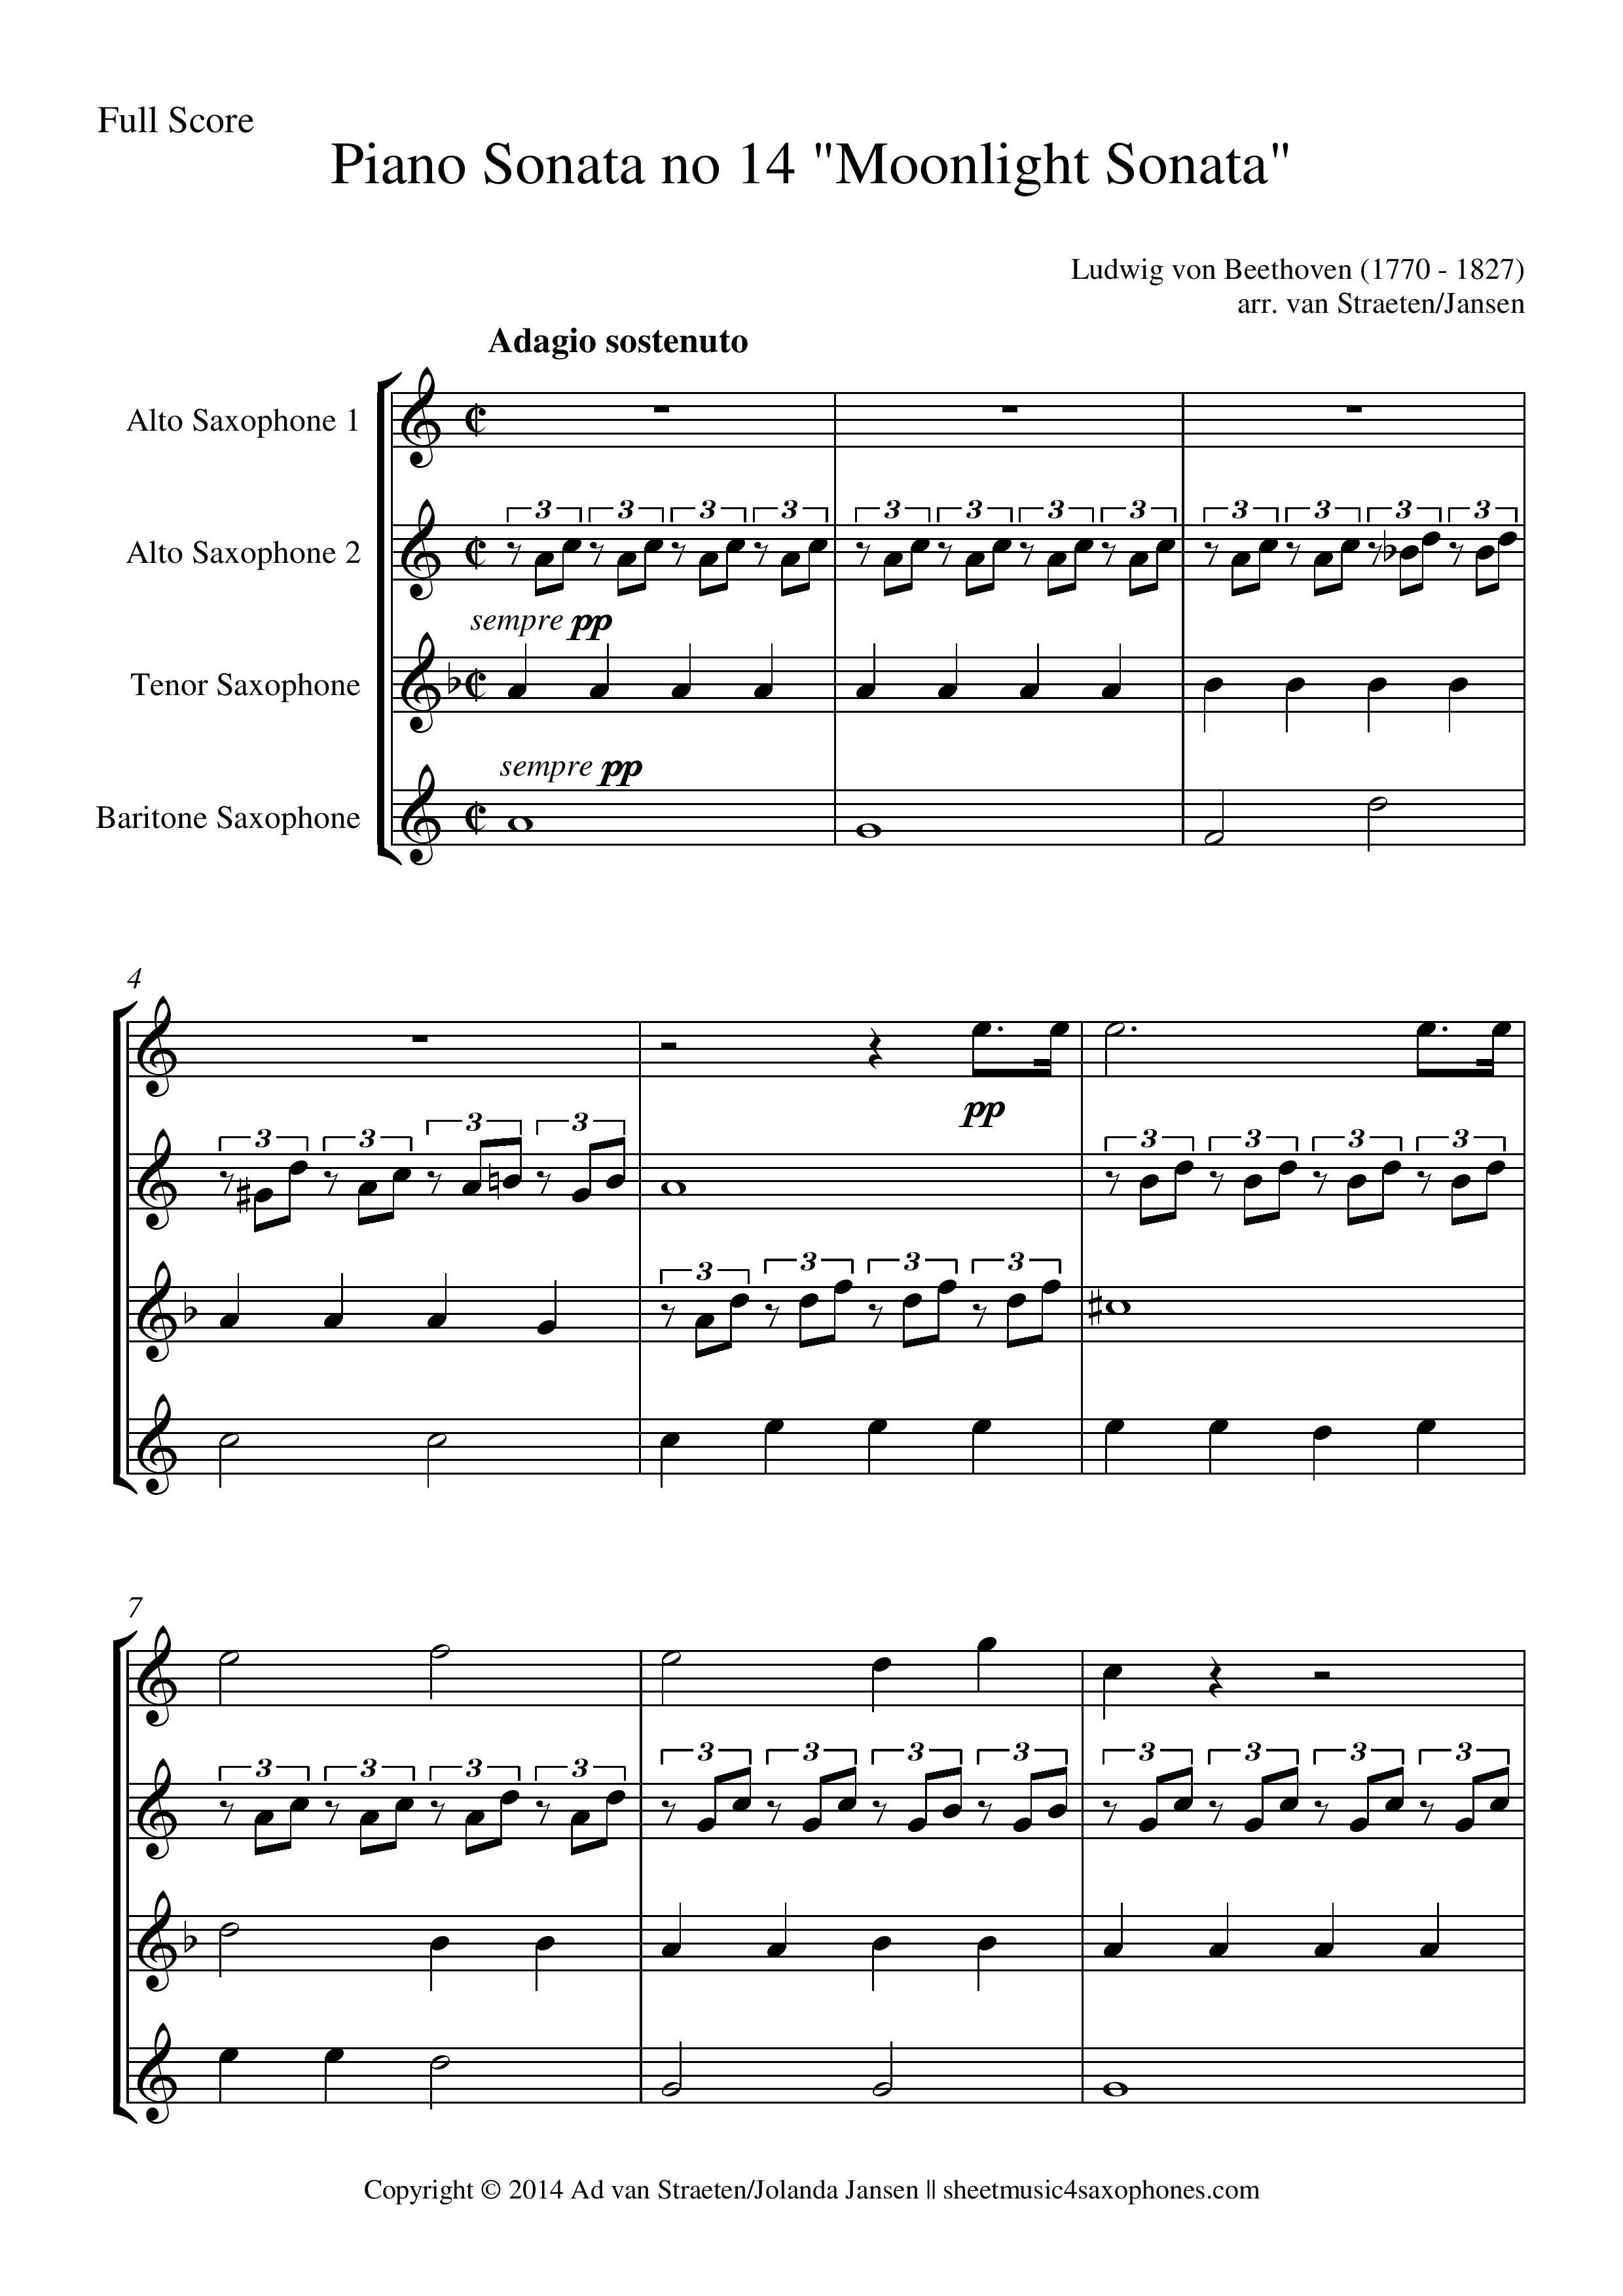 moon light sonata sheet music pdf